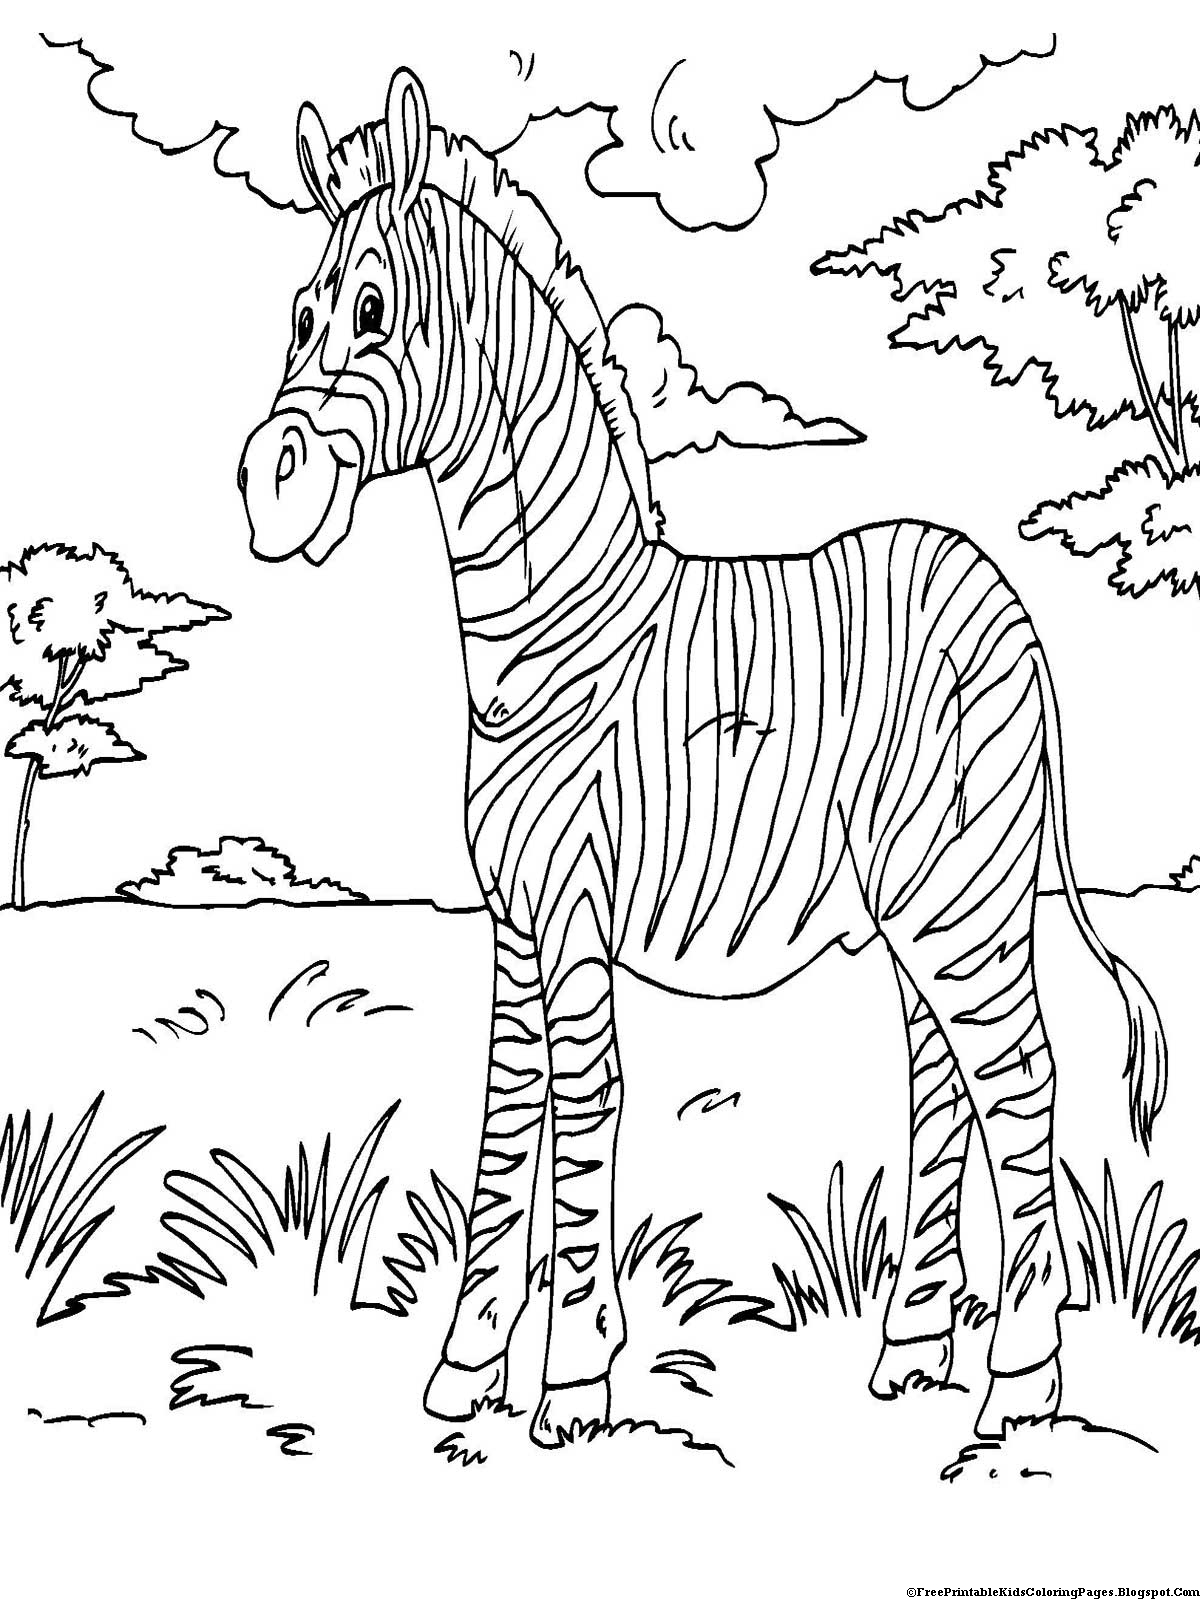 large animal coloring pages simple dog coloring page dog coloring page puppy large coloring pages animal